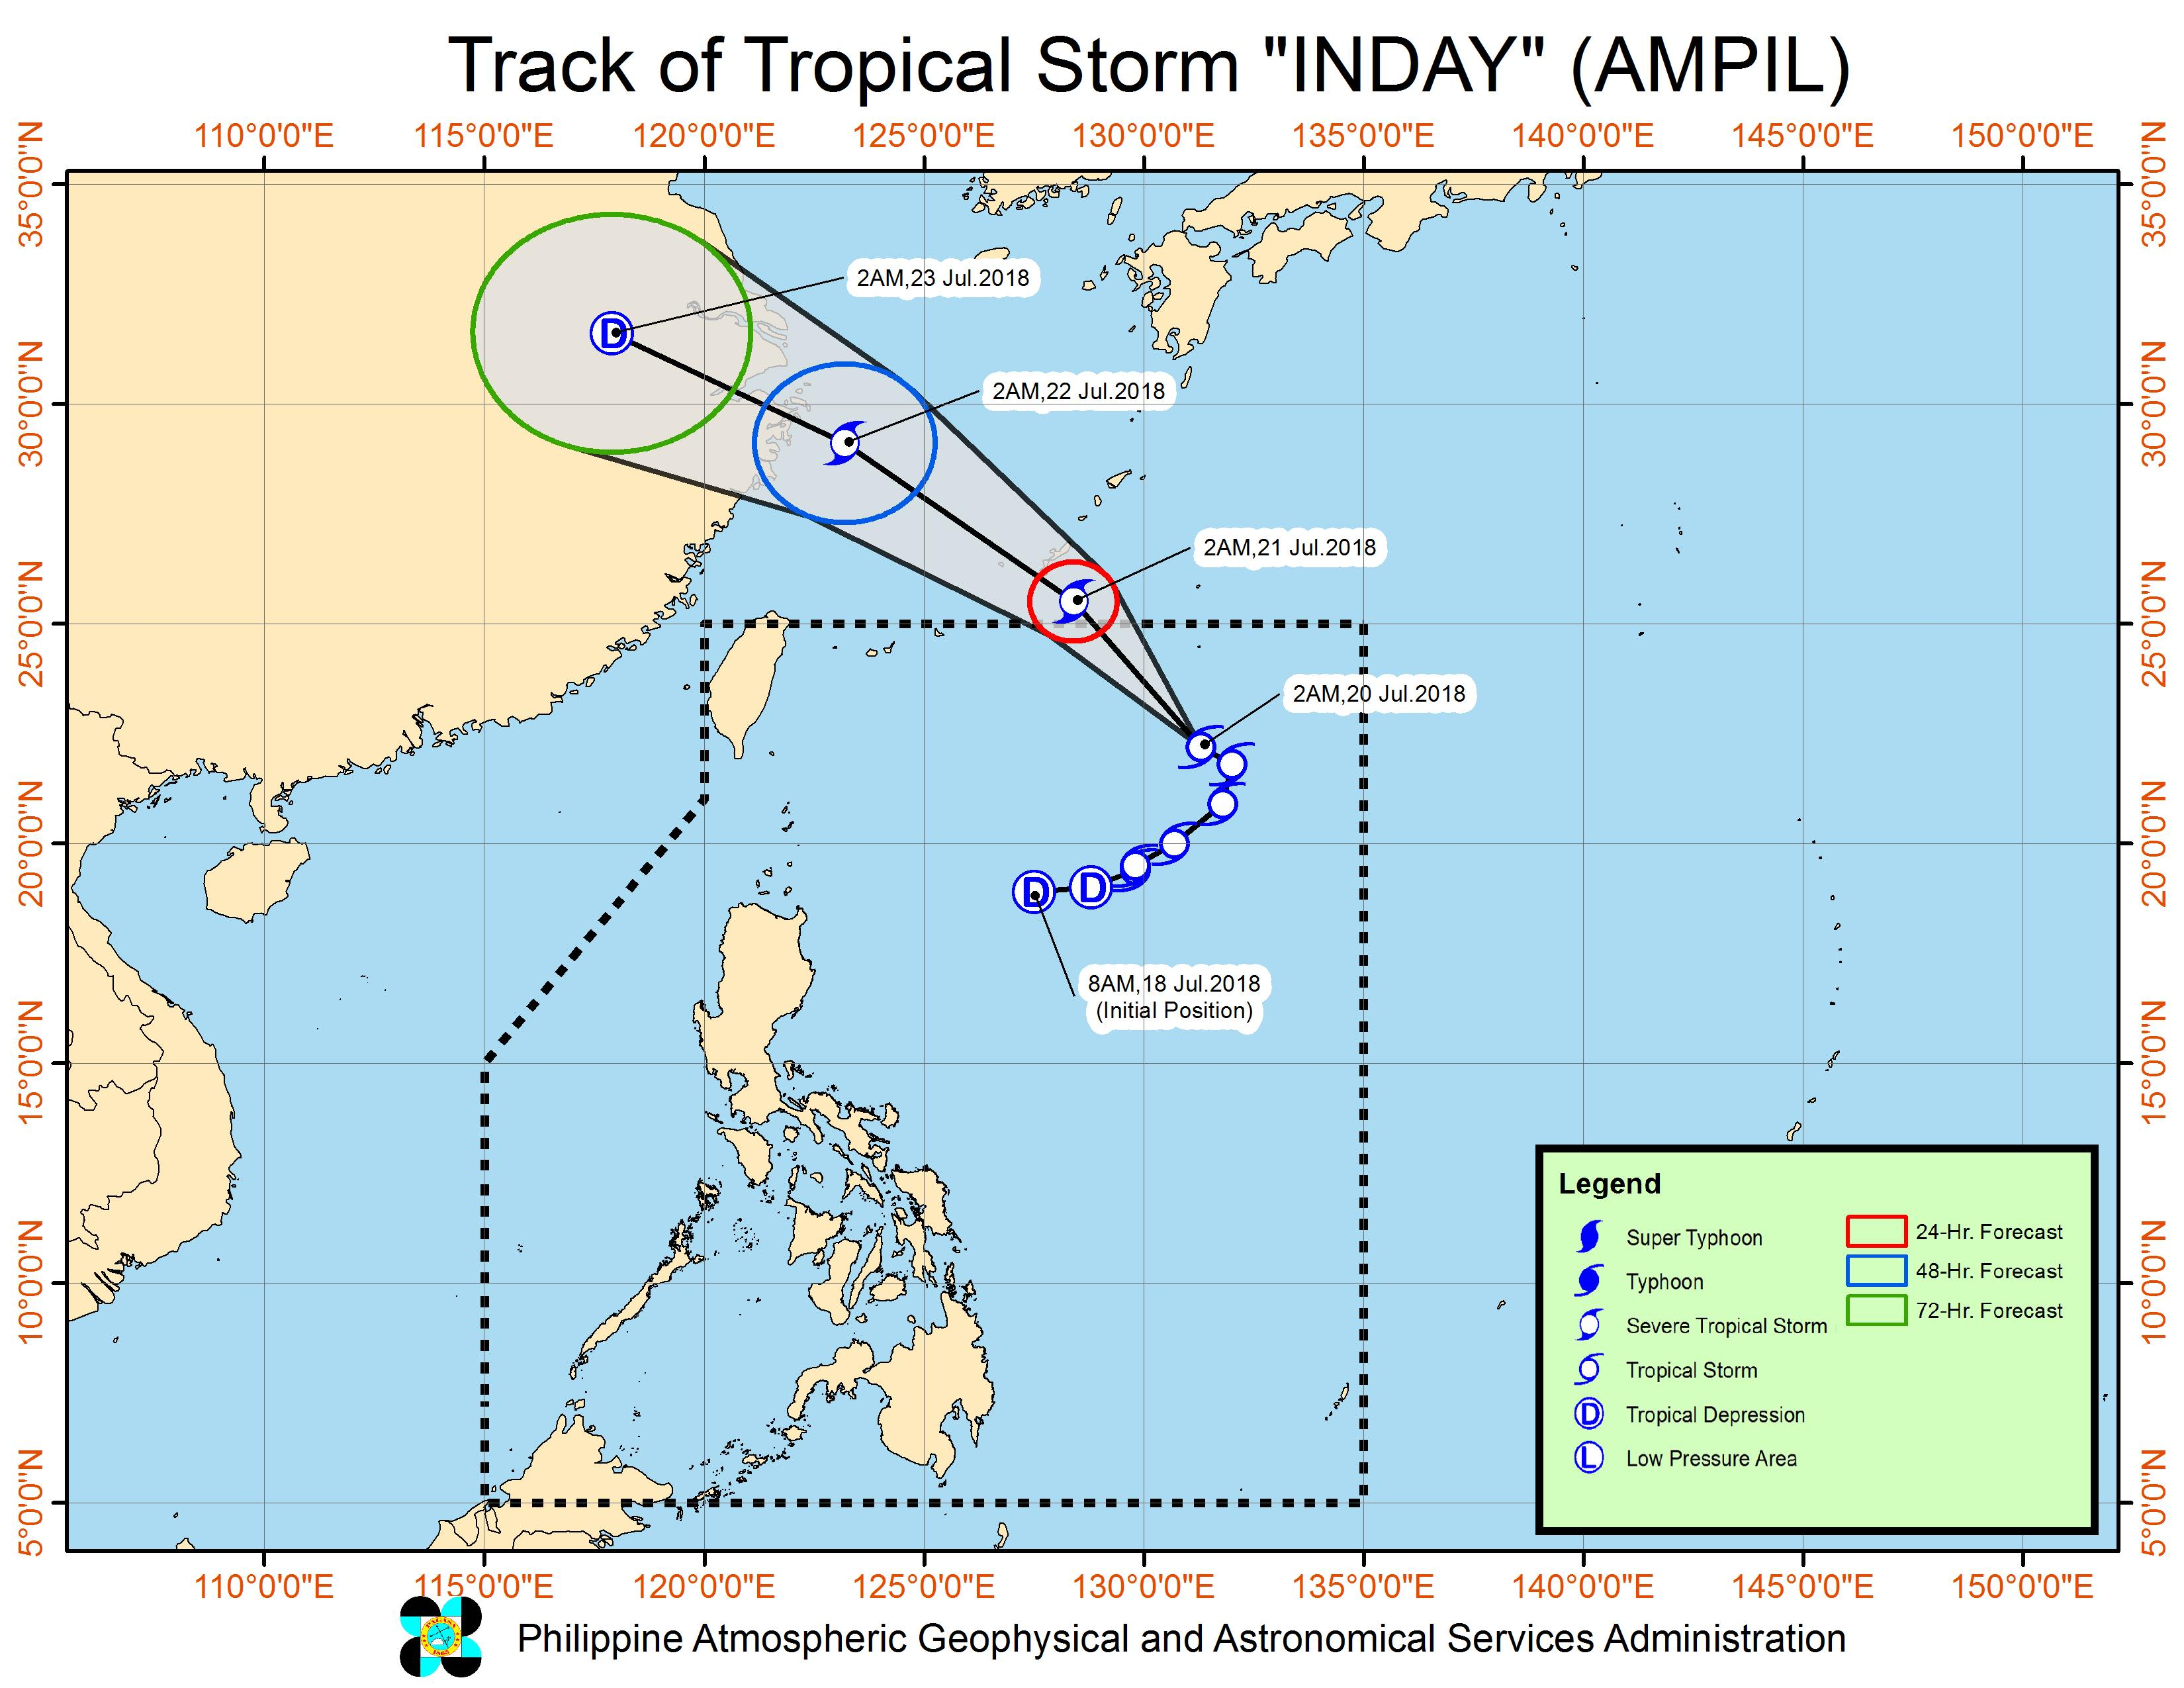 Forecast track of Tropical Storm Inday (Ampil) as of July 20, 2018, 4 am. Image courtesy of PAGASA